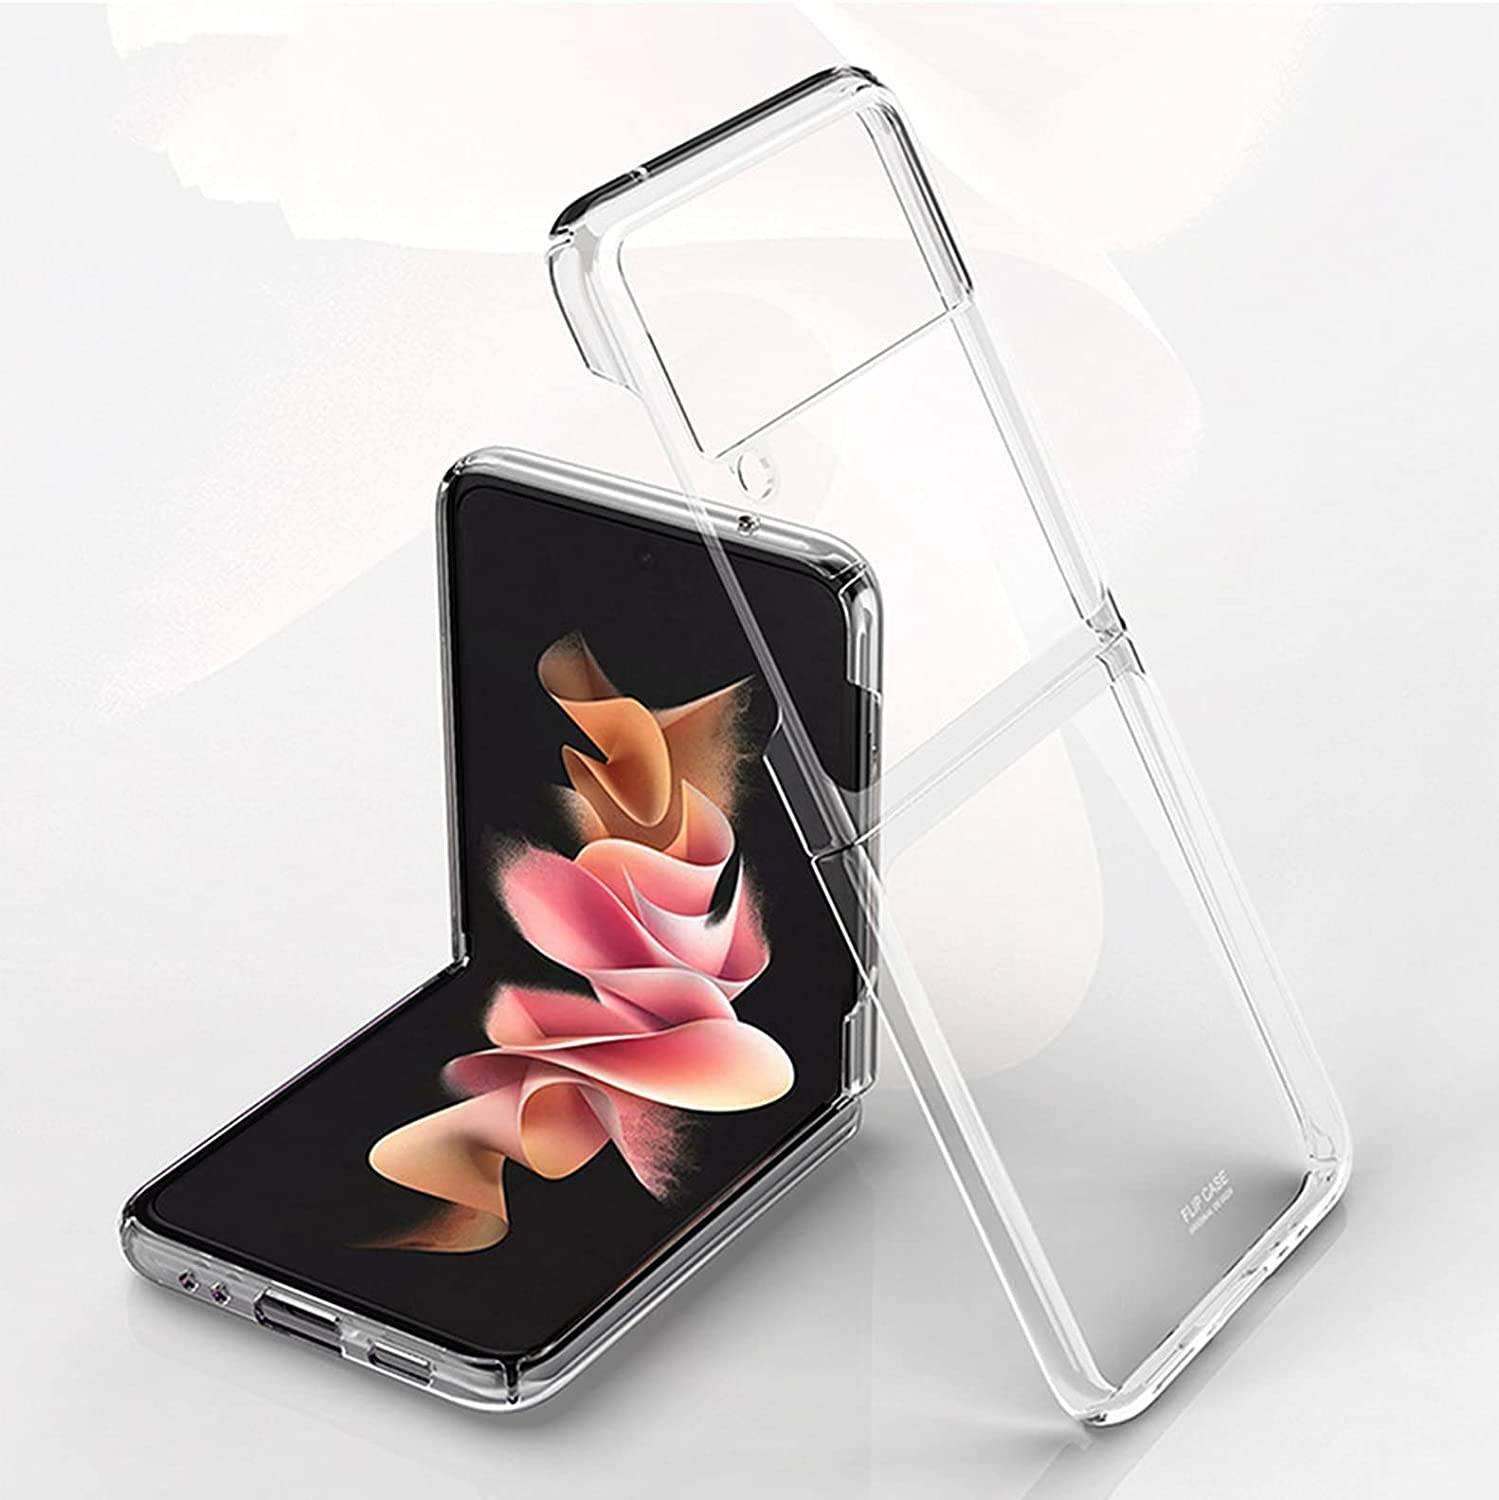 Z Flip 3 Case, Slim Case for Samsung Galaxy Z Flip 3, Luxury Transparent Plating PC Crystal Cove Finish Anti-Scratch Shockproof Protective Case for Samsung Galaxy Z Flip 3 5G. (Clear)